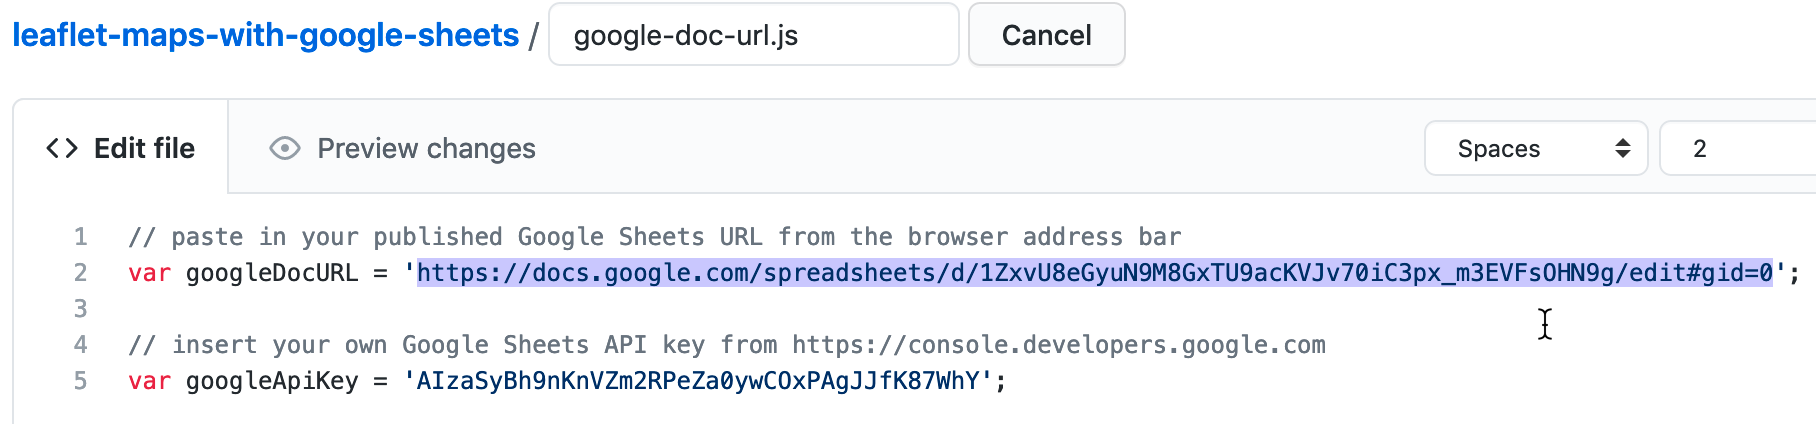 Paste in your Google Sheet URL to replace our URL.